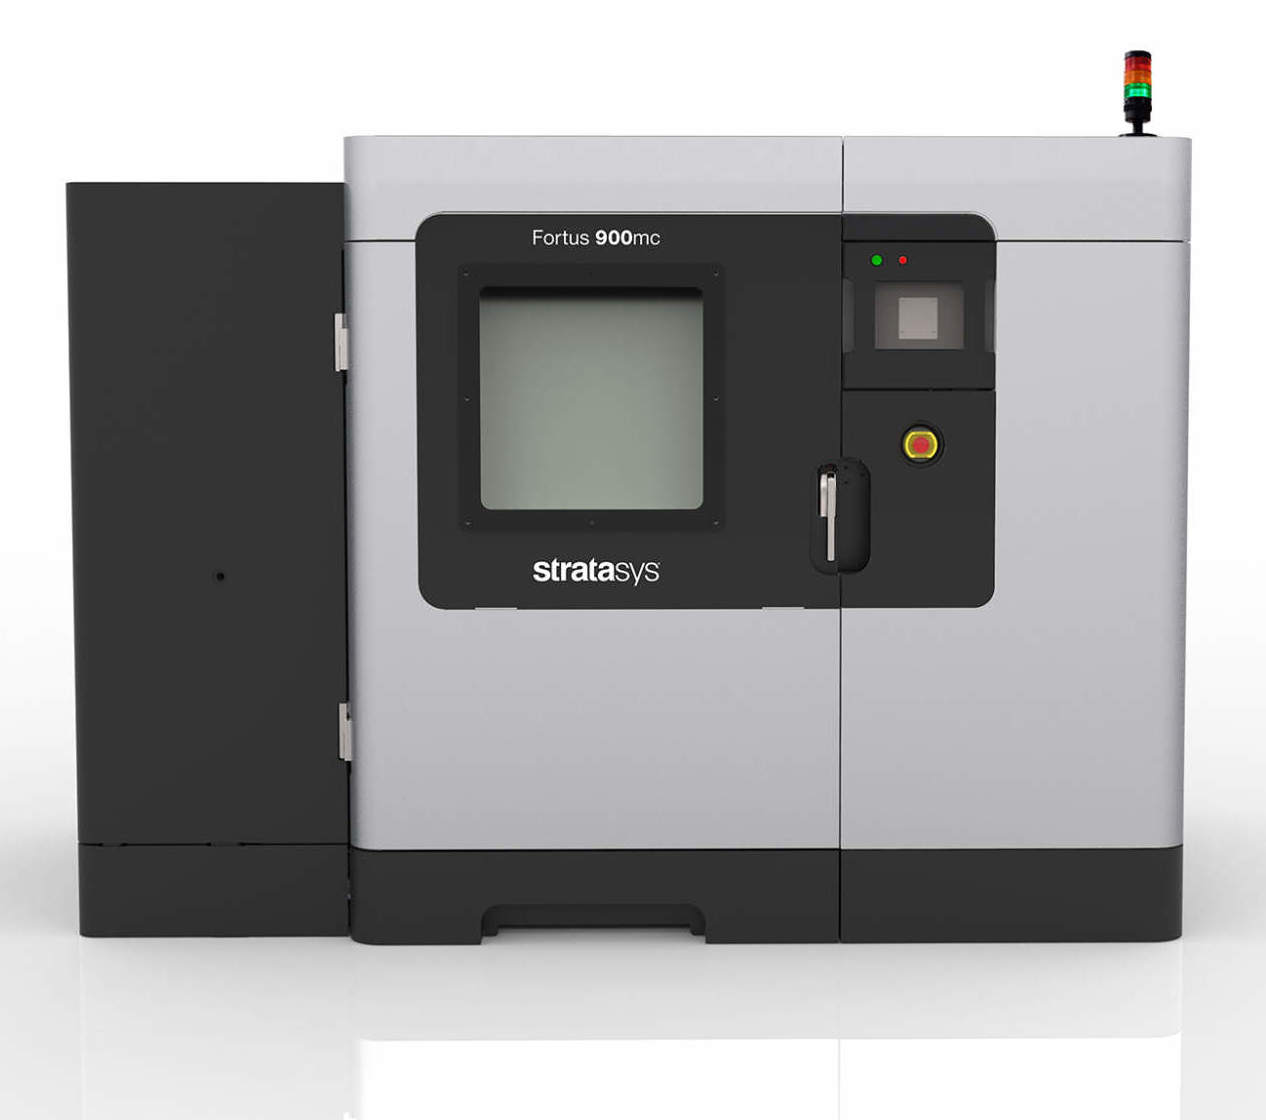 New edition of the Fortus 900mc specially for aerospace solutions. Image via Stratasys.